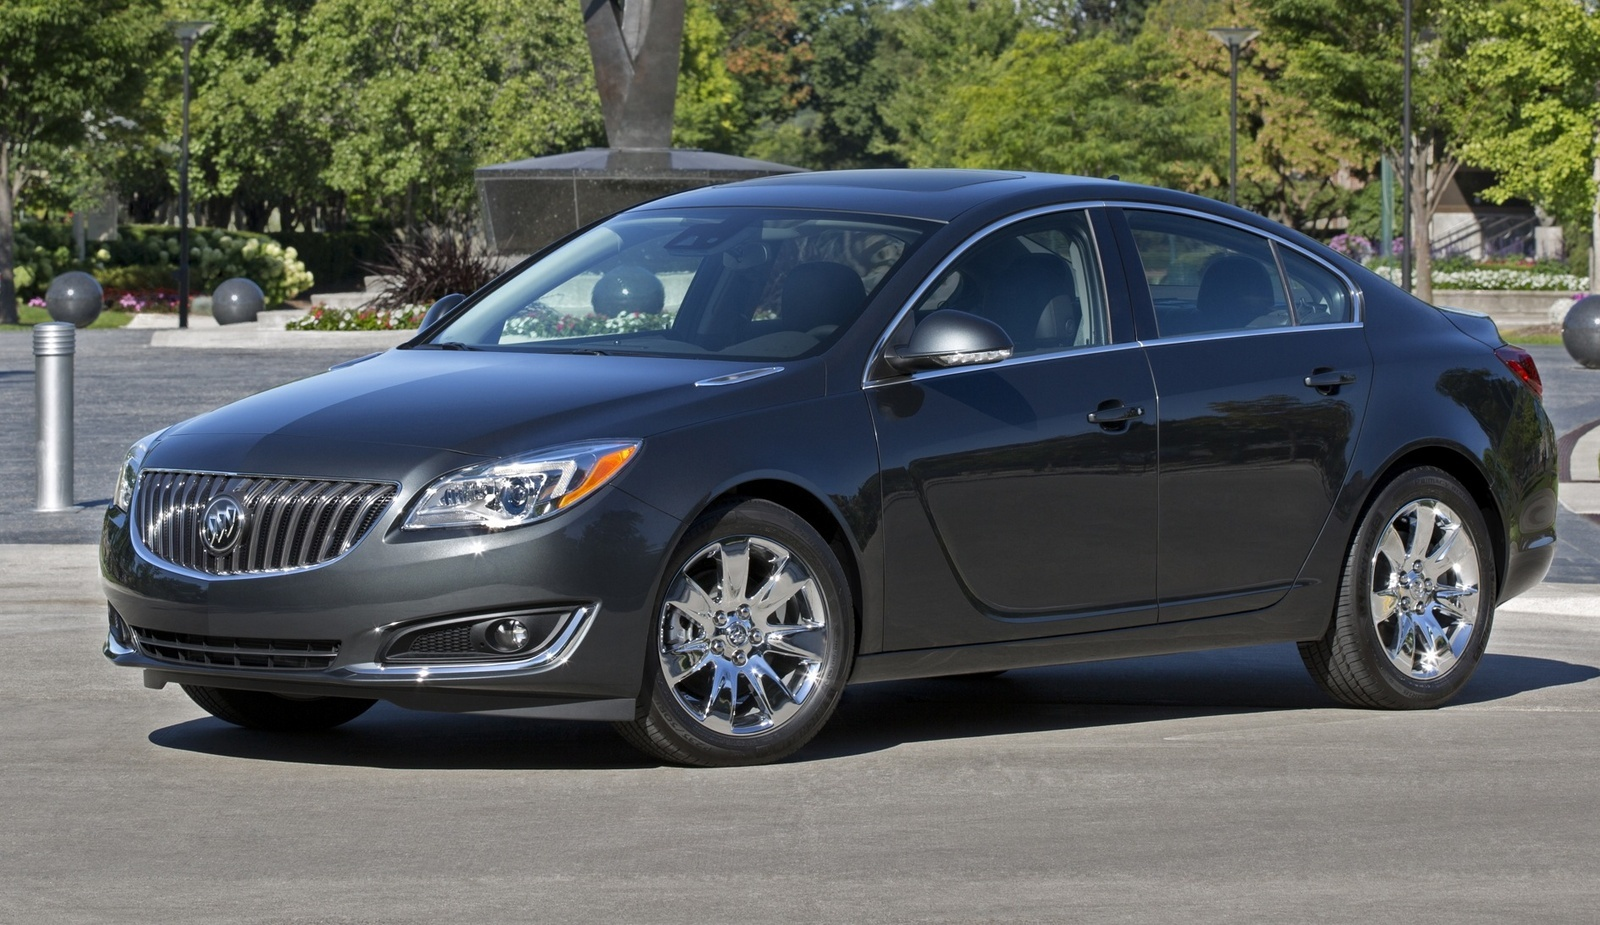 2015 Buick Regal #16